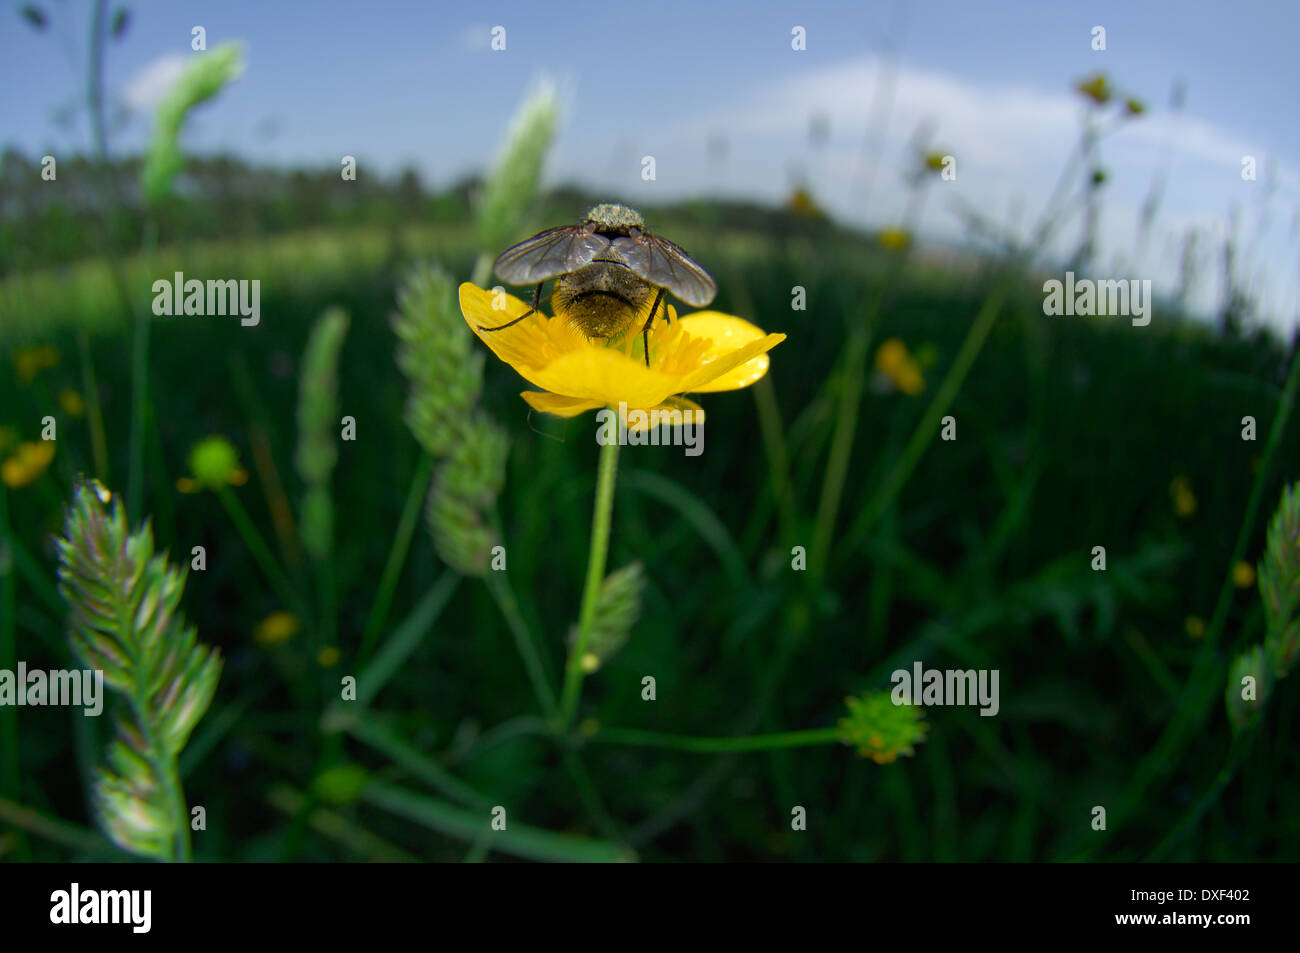 Fly on a buttercup flower - Stock Image